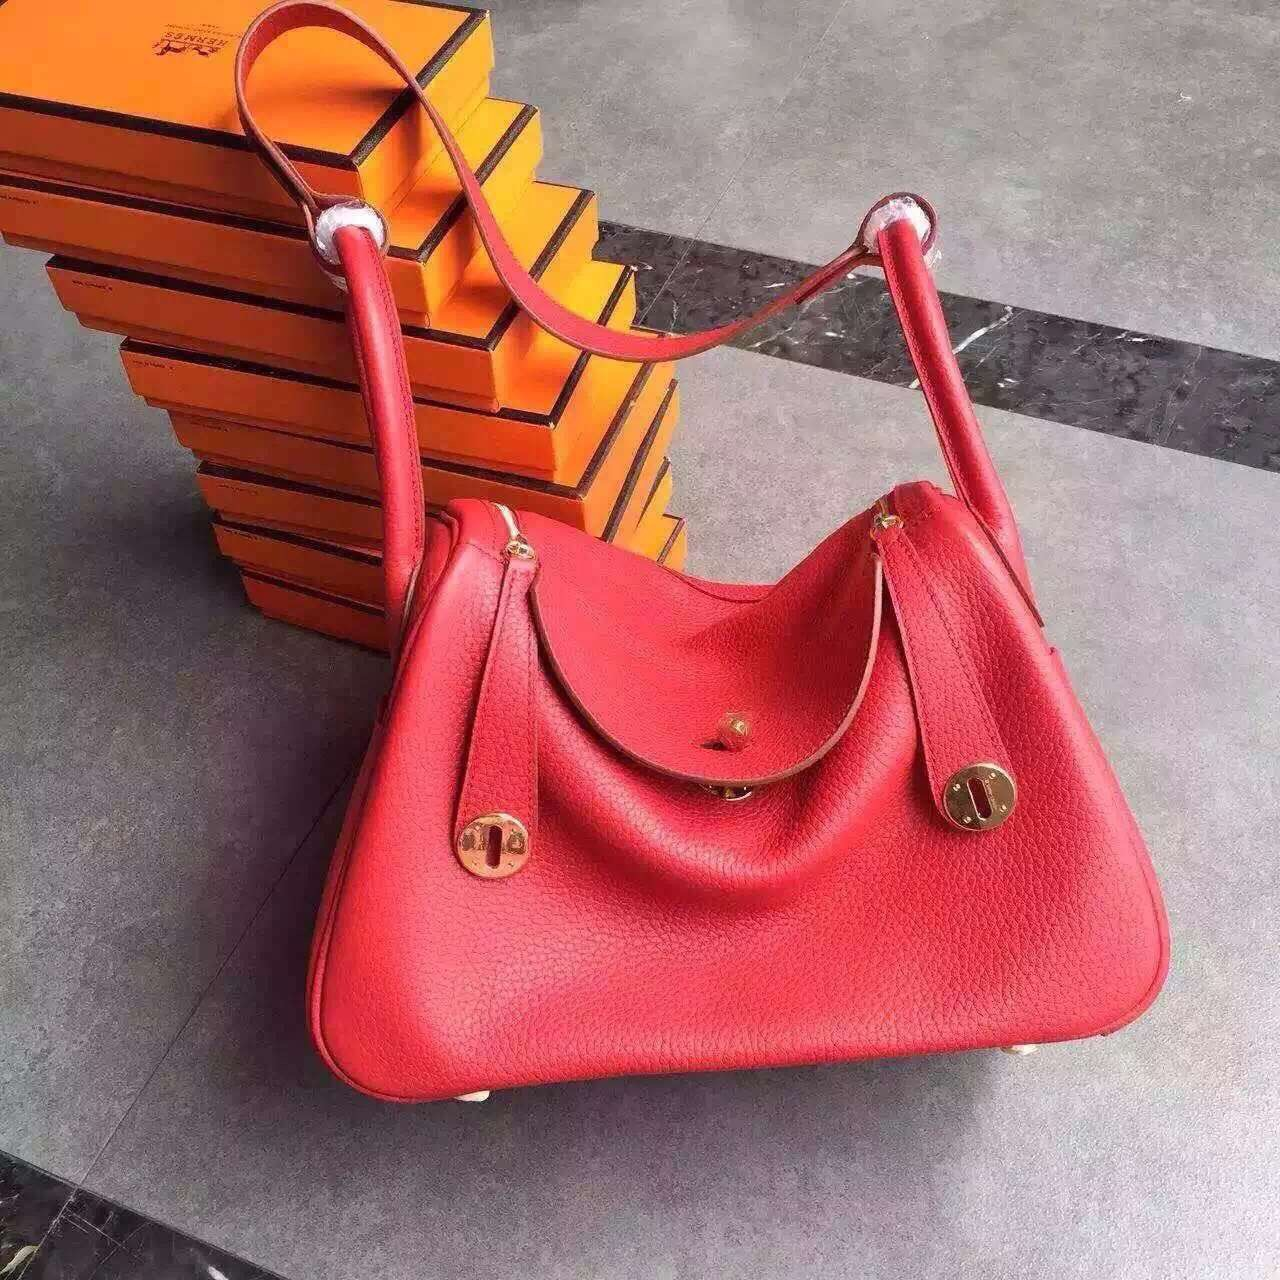 Hermes Lindy 30cm Handbag Red Gold